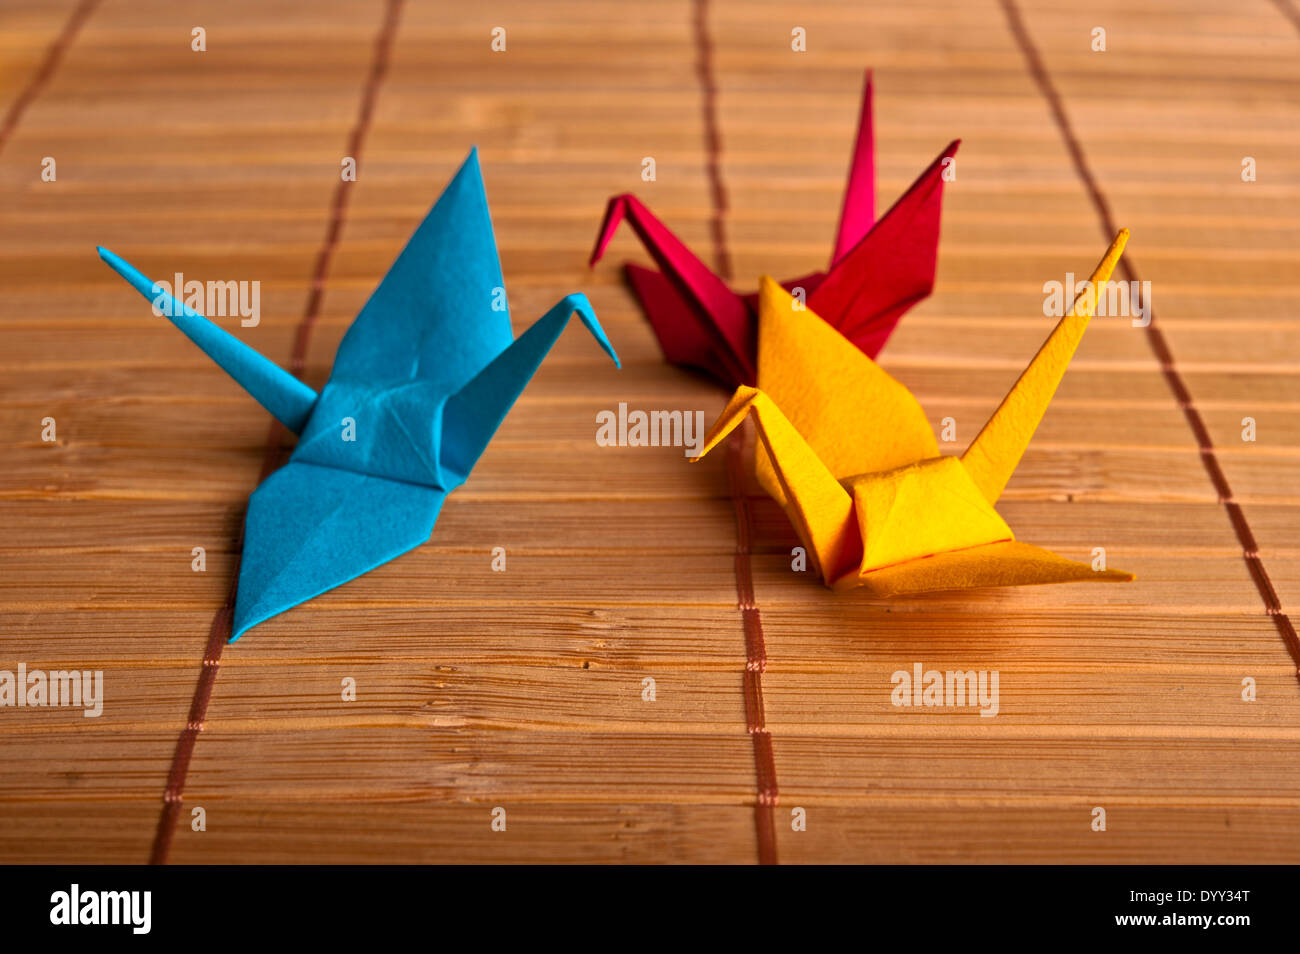 colorful origami cranes - Stock Image